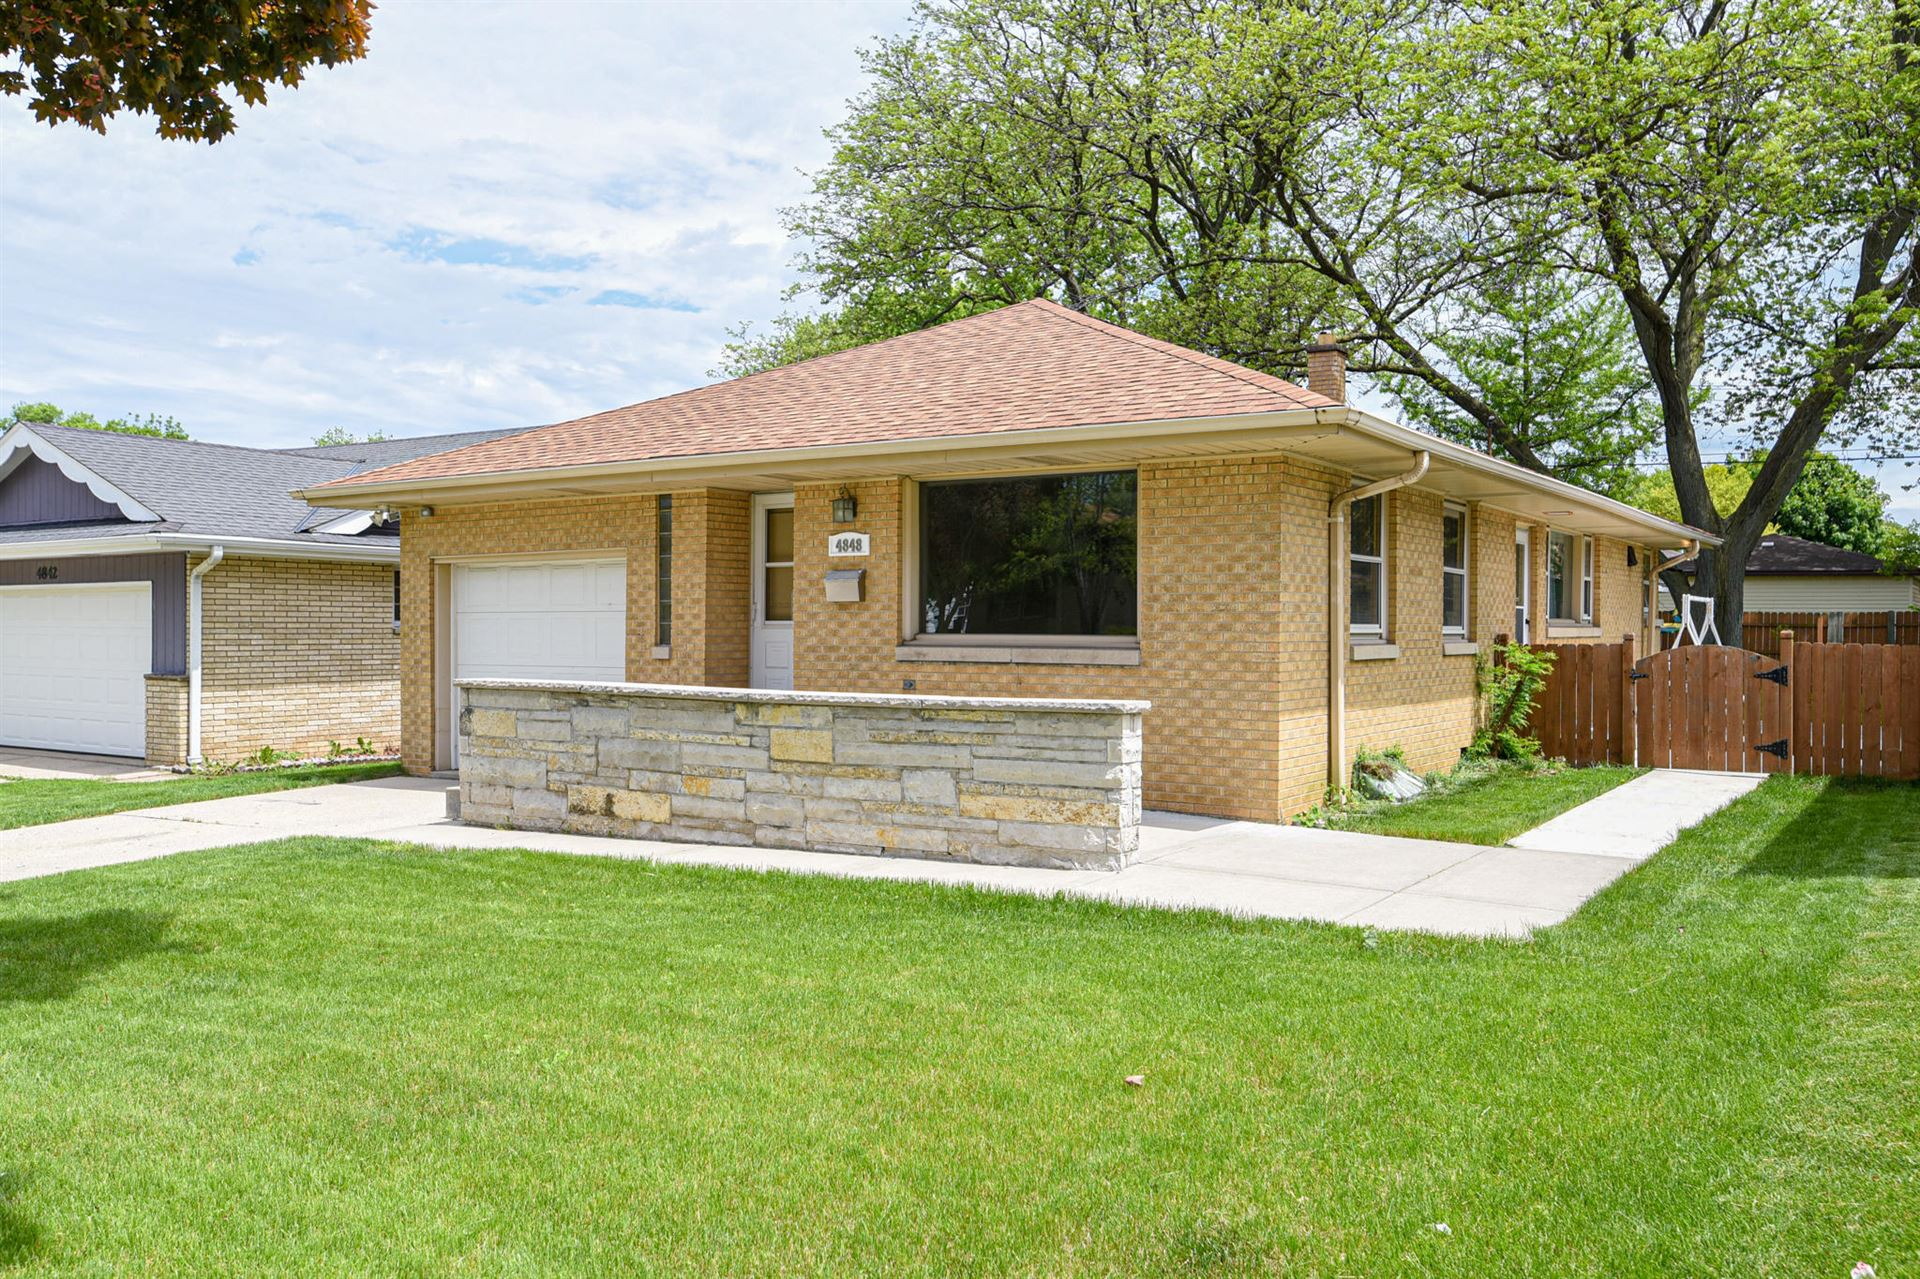 4848 S 23rd St, Milwaukee, WI 53221 - #: 1691694